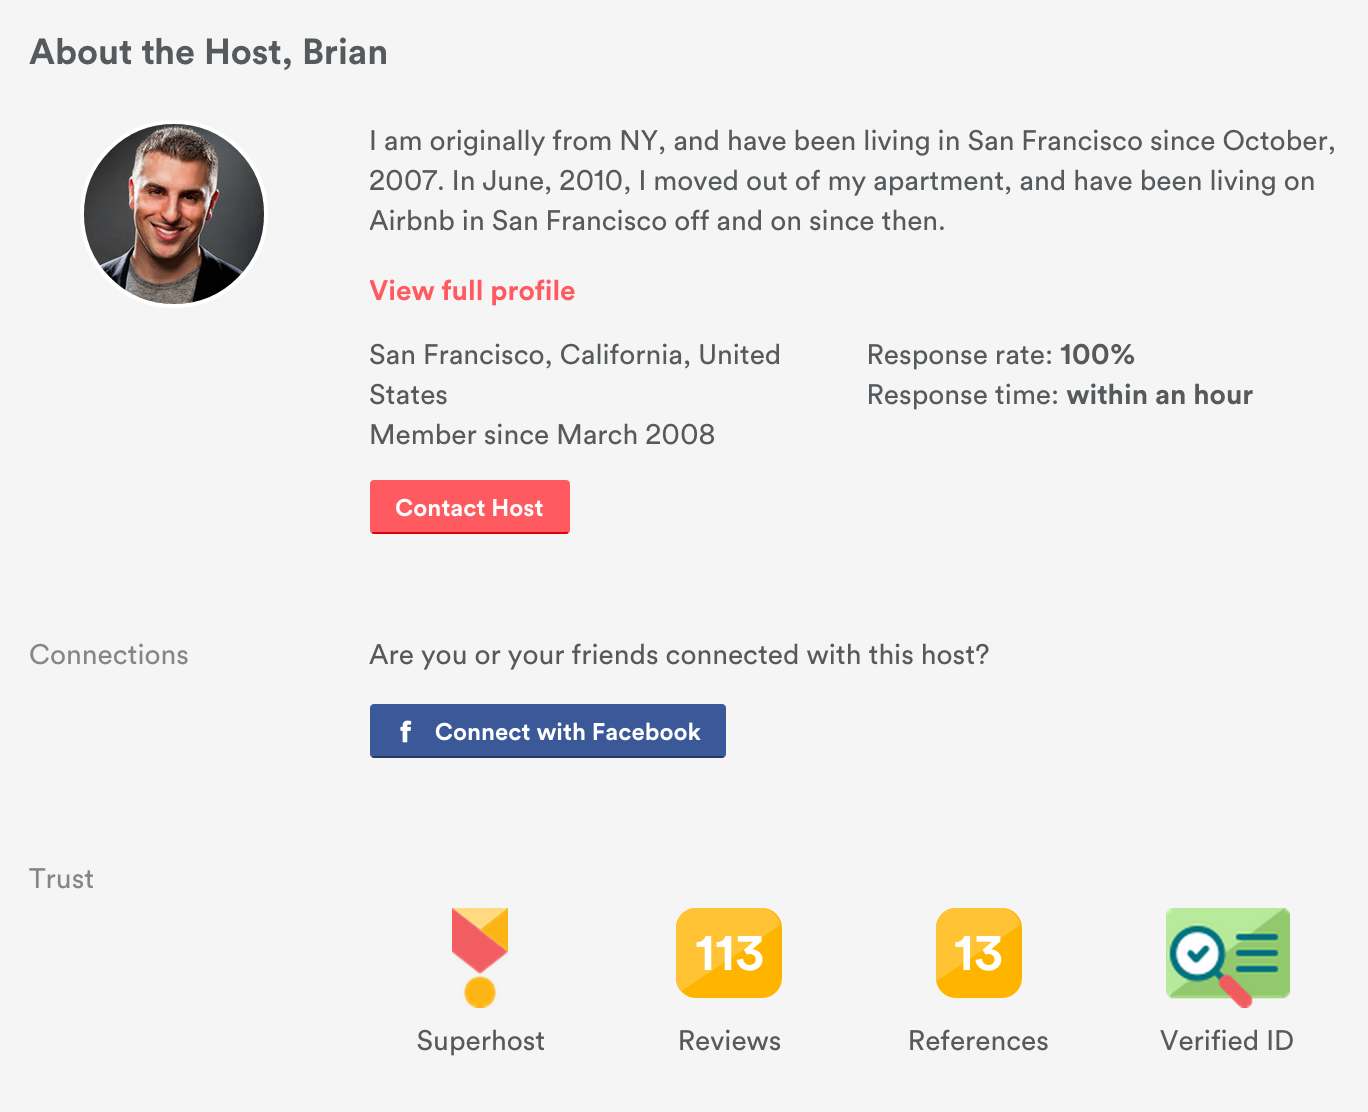 trusted host on Airbnb